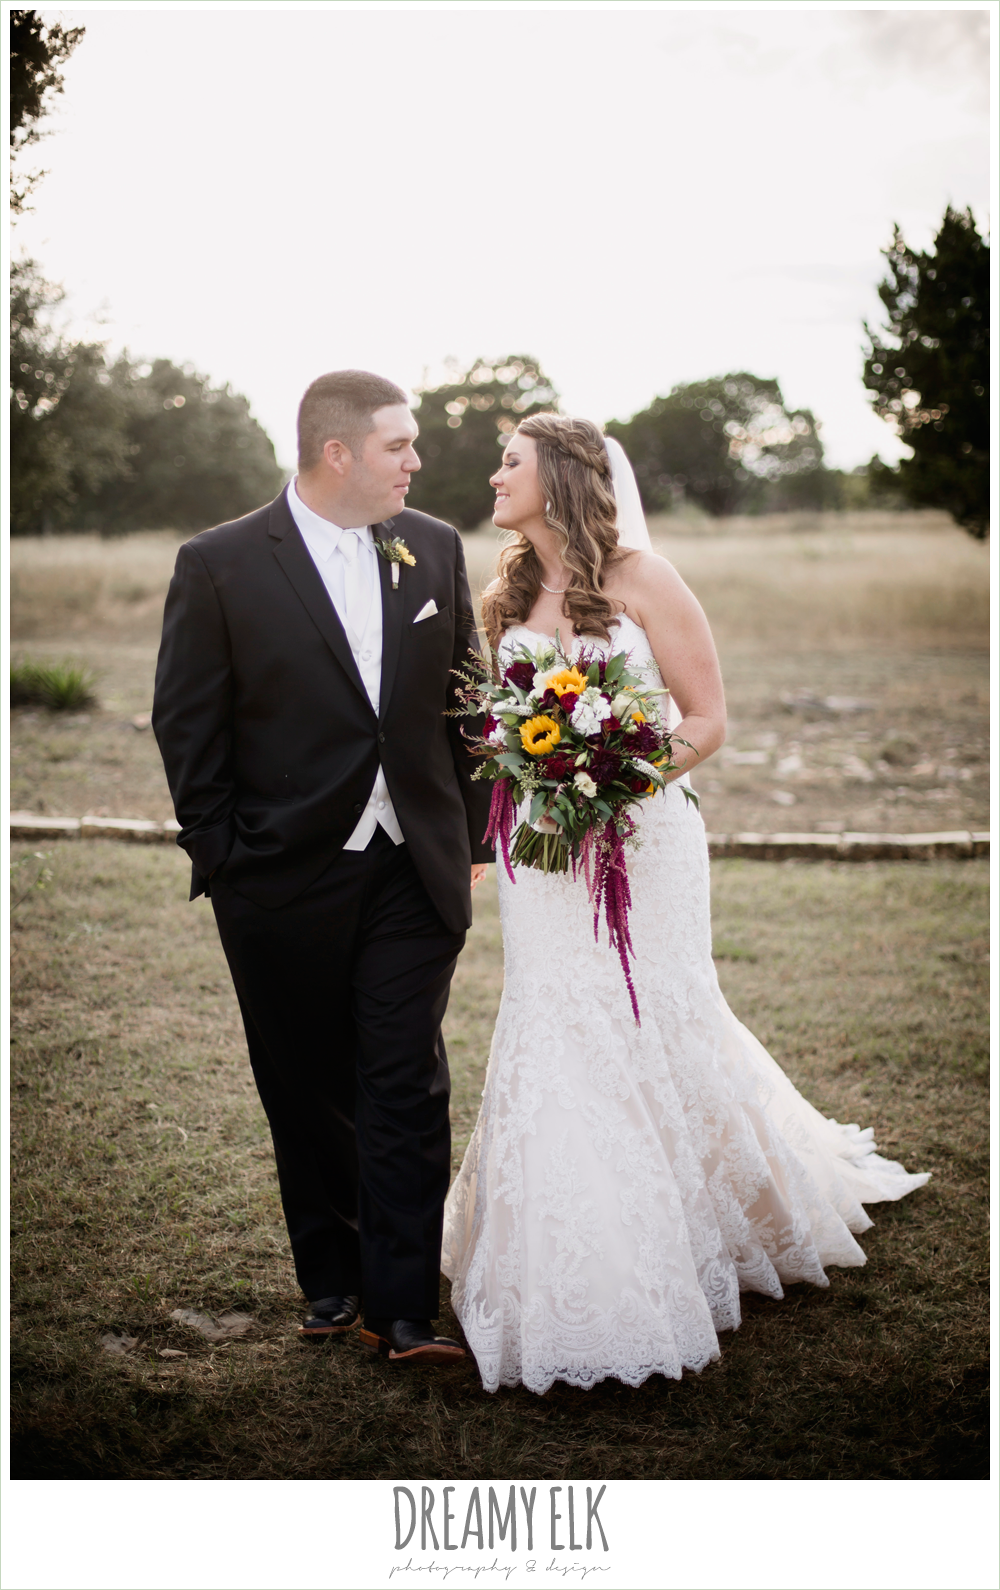 men's wearhouse, lustrebella, ventura's bridal fashions, sweetheart lace strapless fit and flare wedding dress, wild bunches floral, sunset bride and groom portraits, maroon and gold fall wedding photo, la hacienda, dripping springs, texas {dreamy elk photography and design}